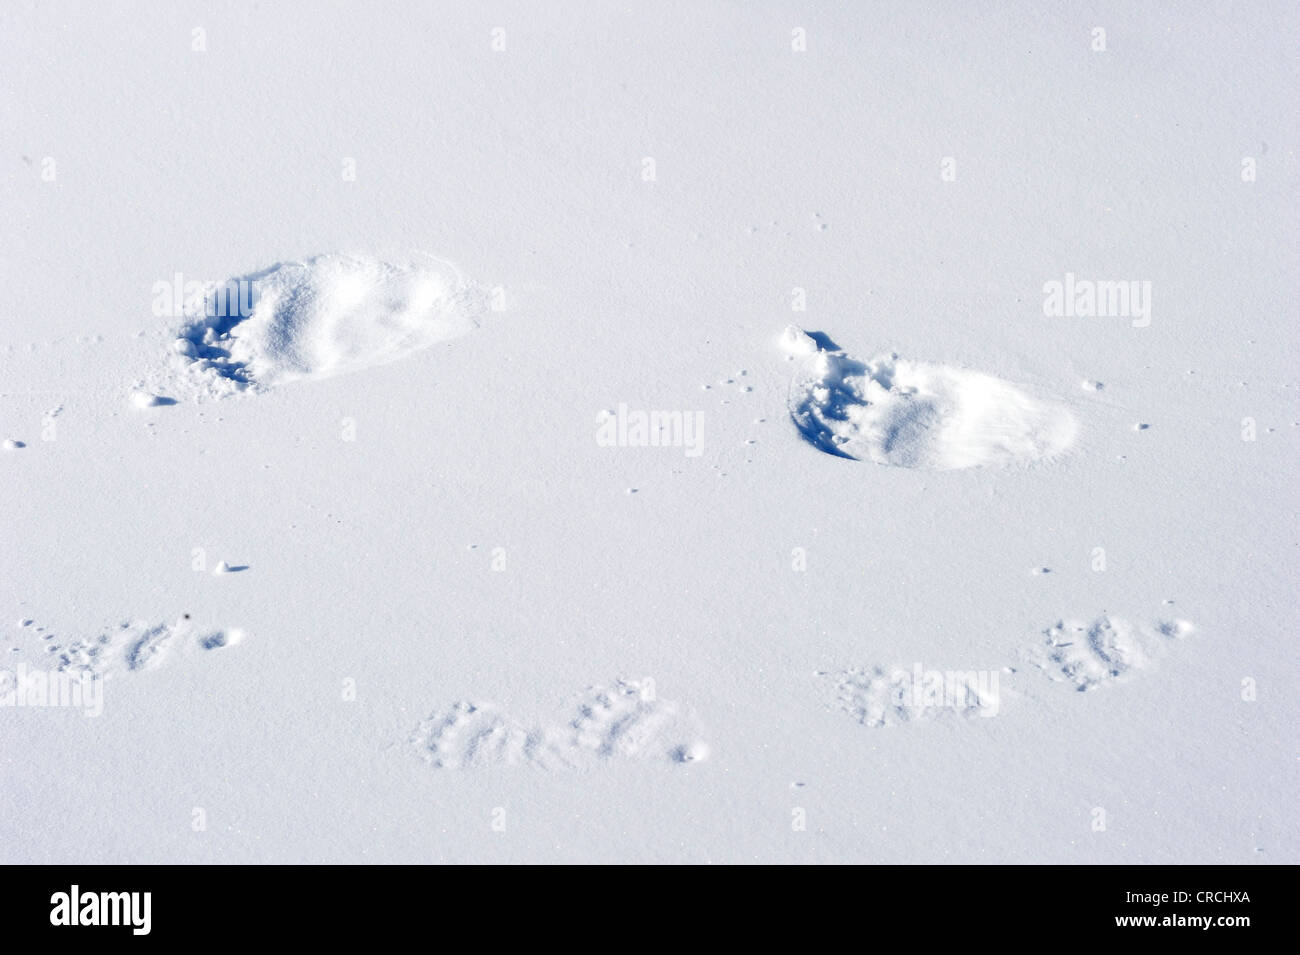 Tracks of Polar bear sow (Ursus maritimus) and a cub in the snow - Stock Image